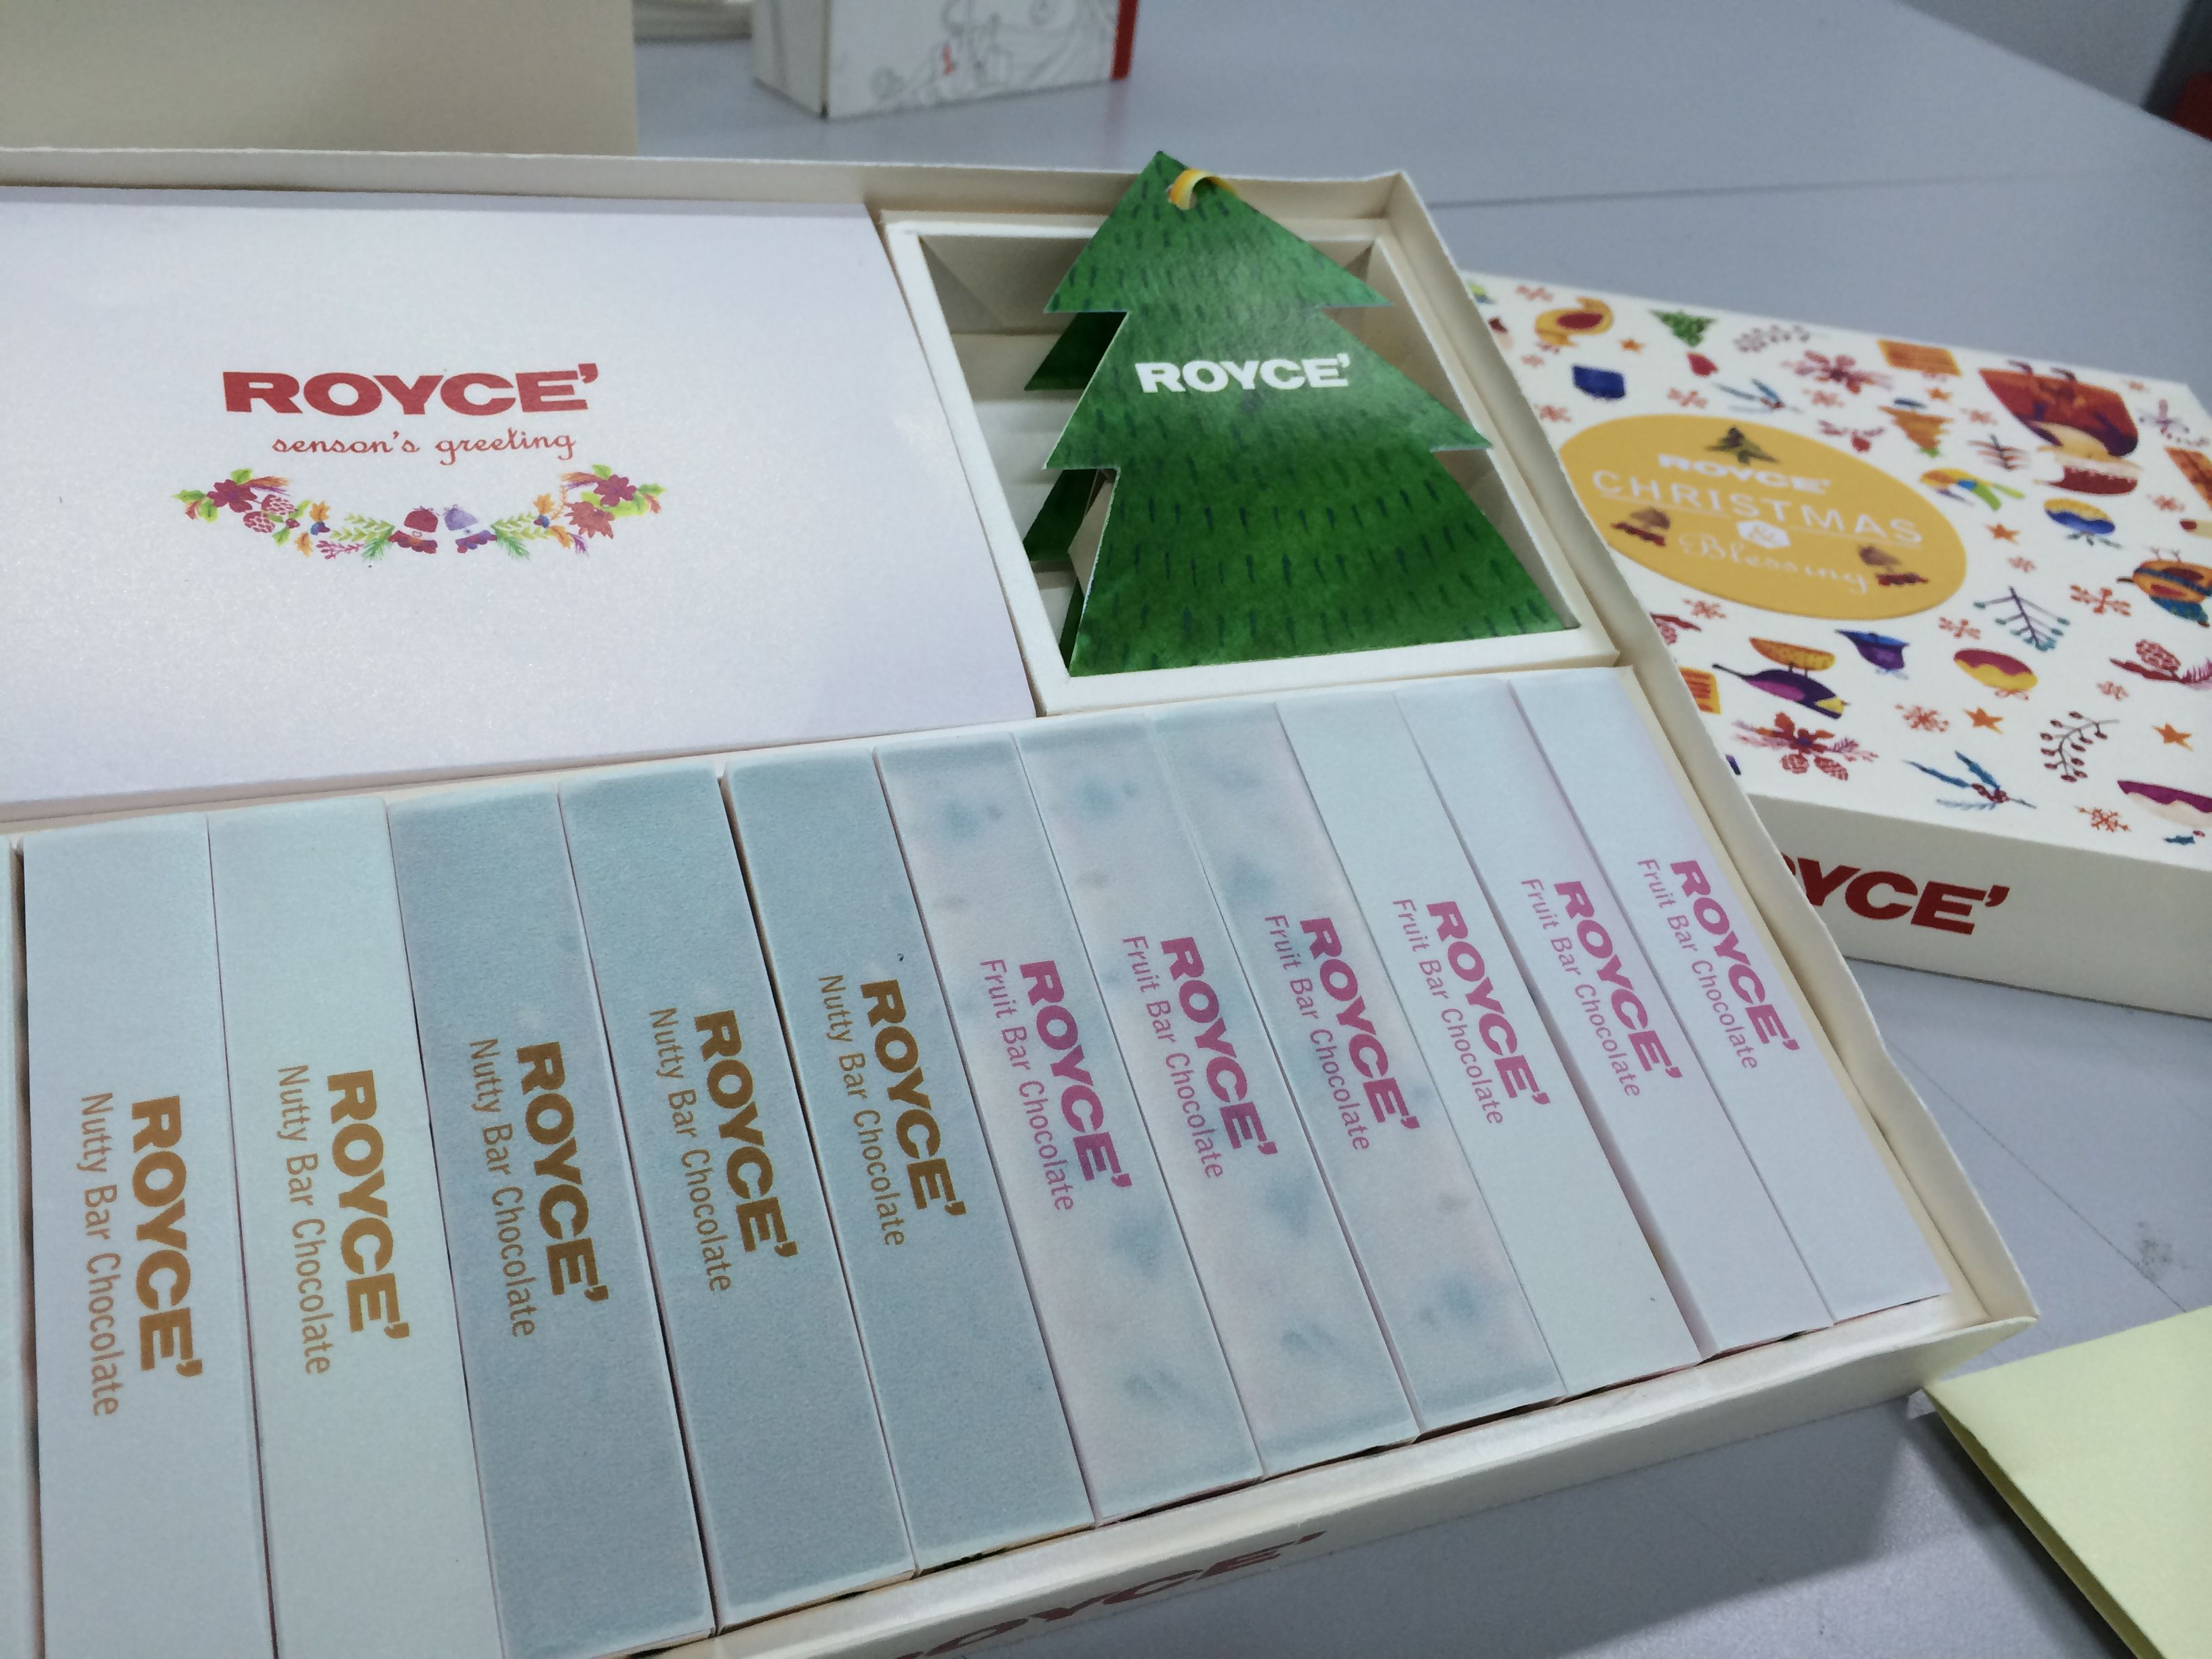 Royce chocolate christmas limited product   PACKAGING DESIGN ROYCE ...